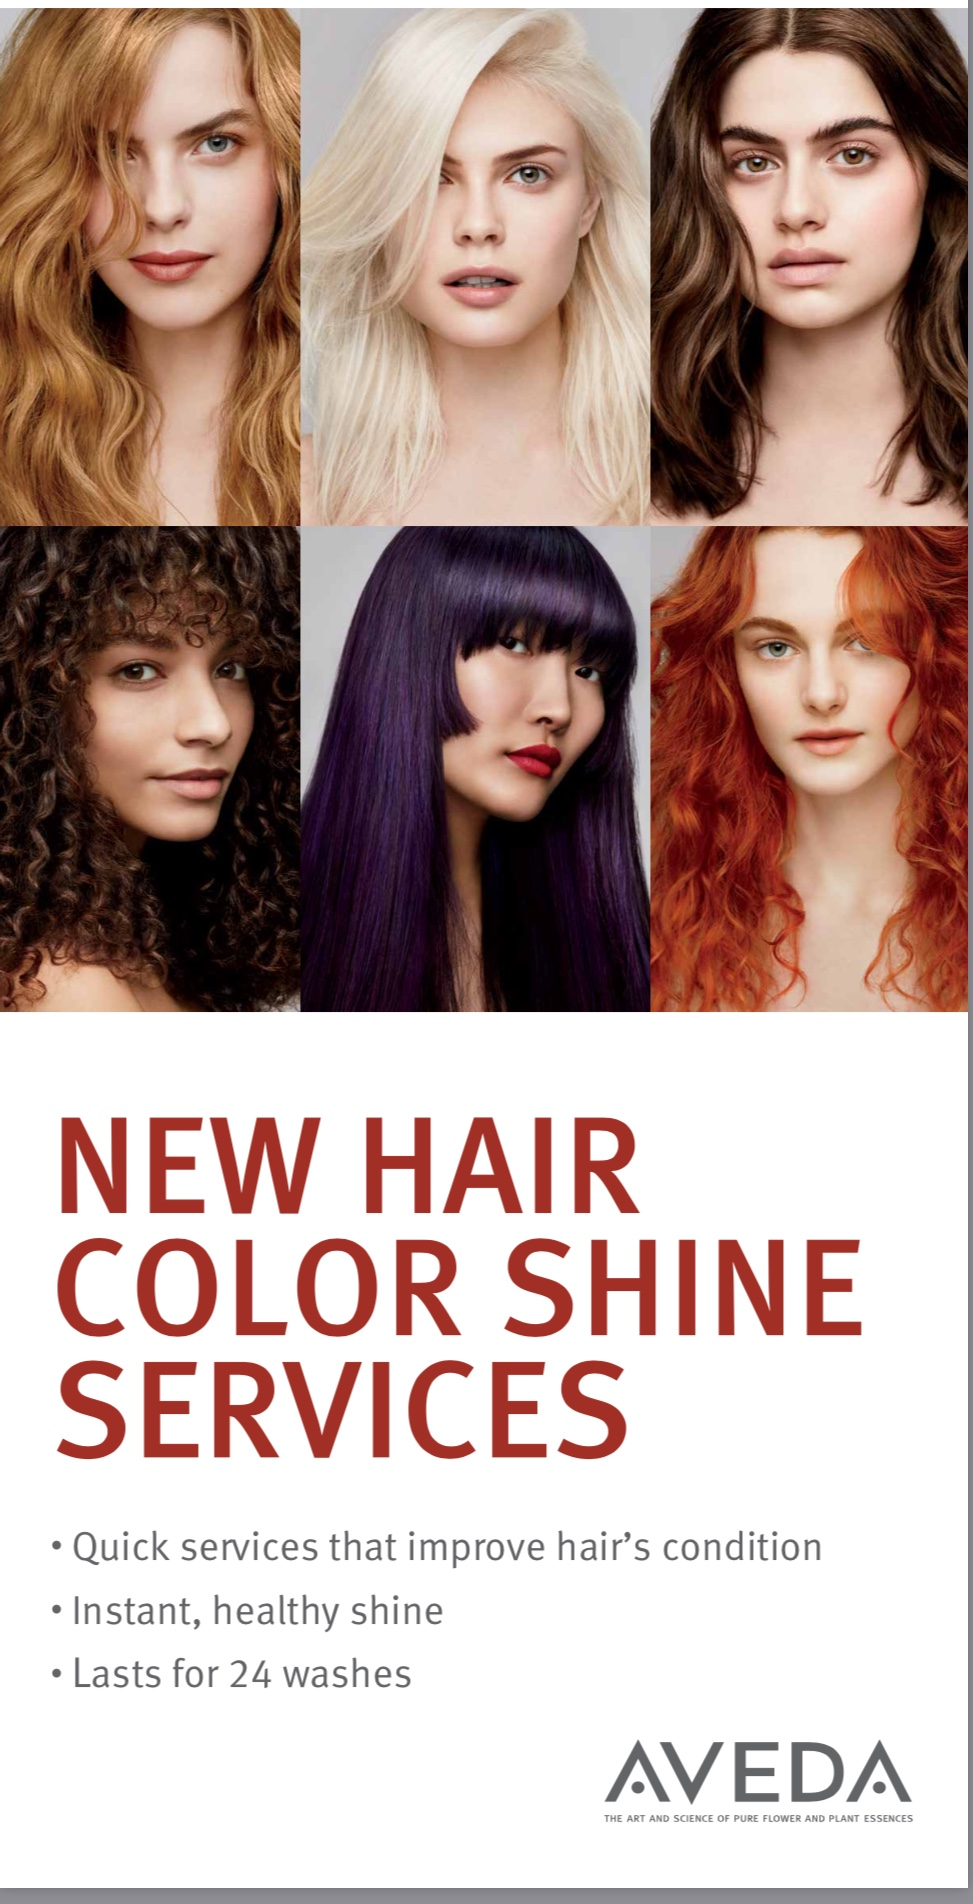 Book Your New Aveda Color Shine Today